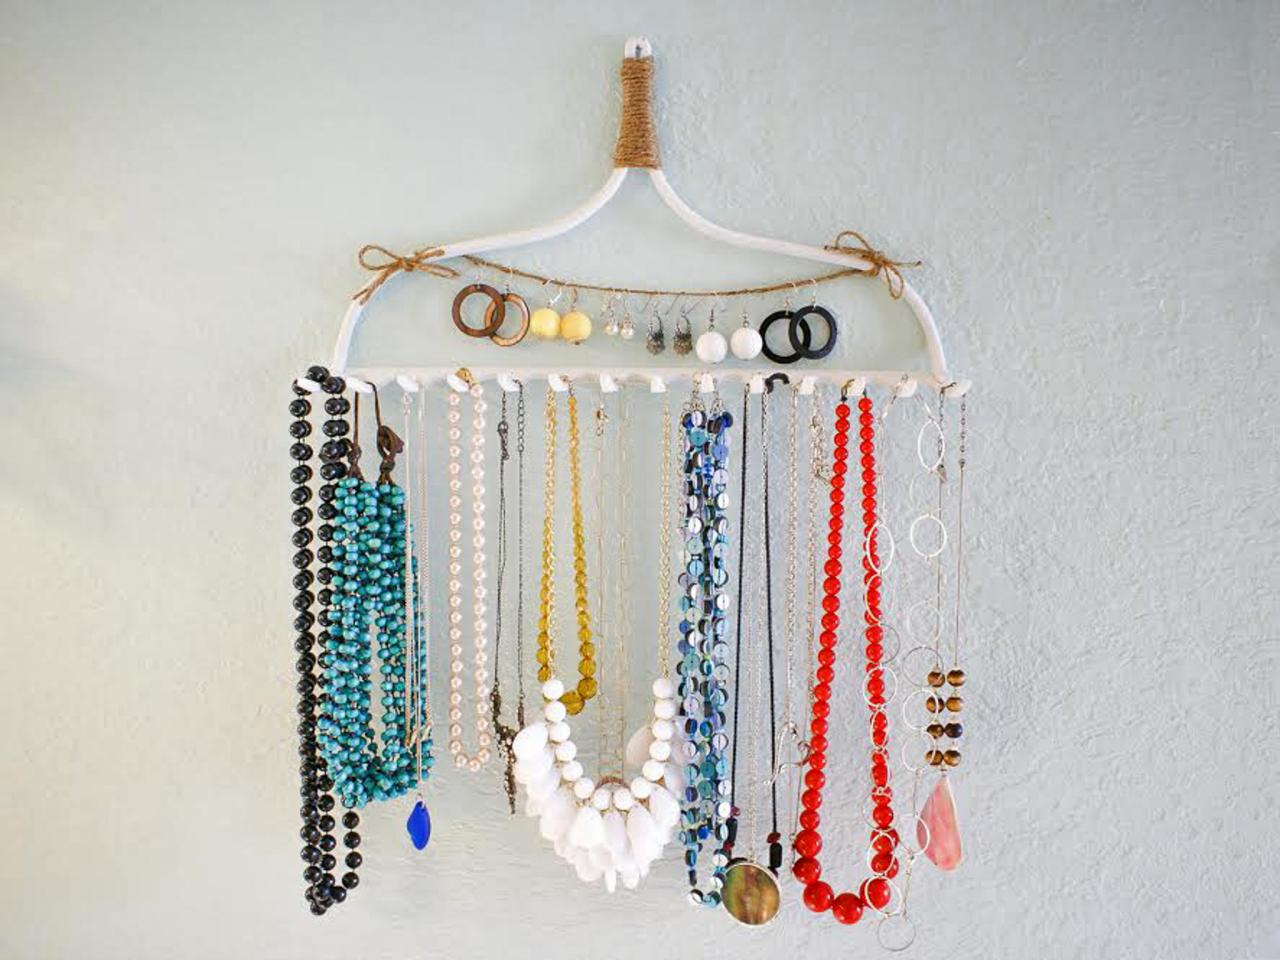 Someone made something creative with this white hanger. They transformed it into a jewelry necklace holder.